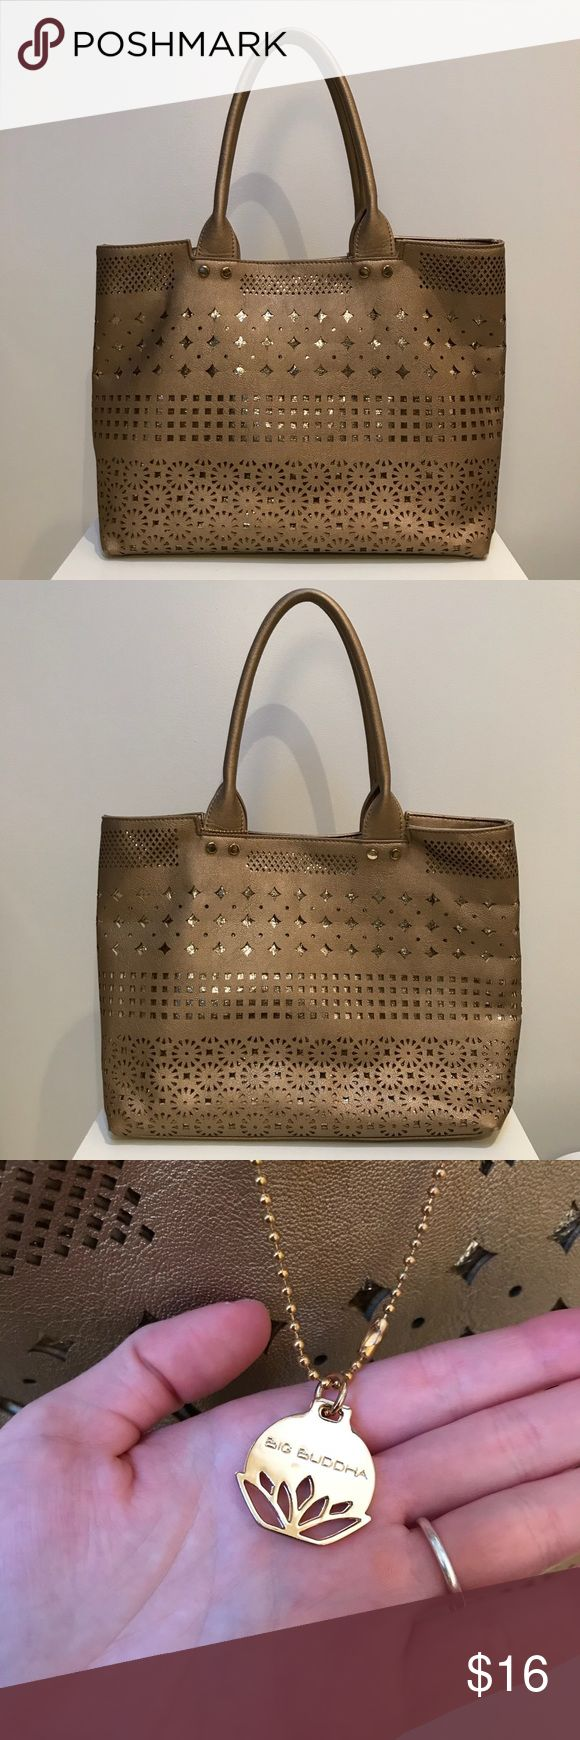 Big Buddha Bag Metallic bronzey gold tone bag from Big Buddha. Very gently used exterior. Please see photos of the inside for makeup spill. Big Buddha Bags